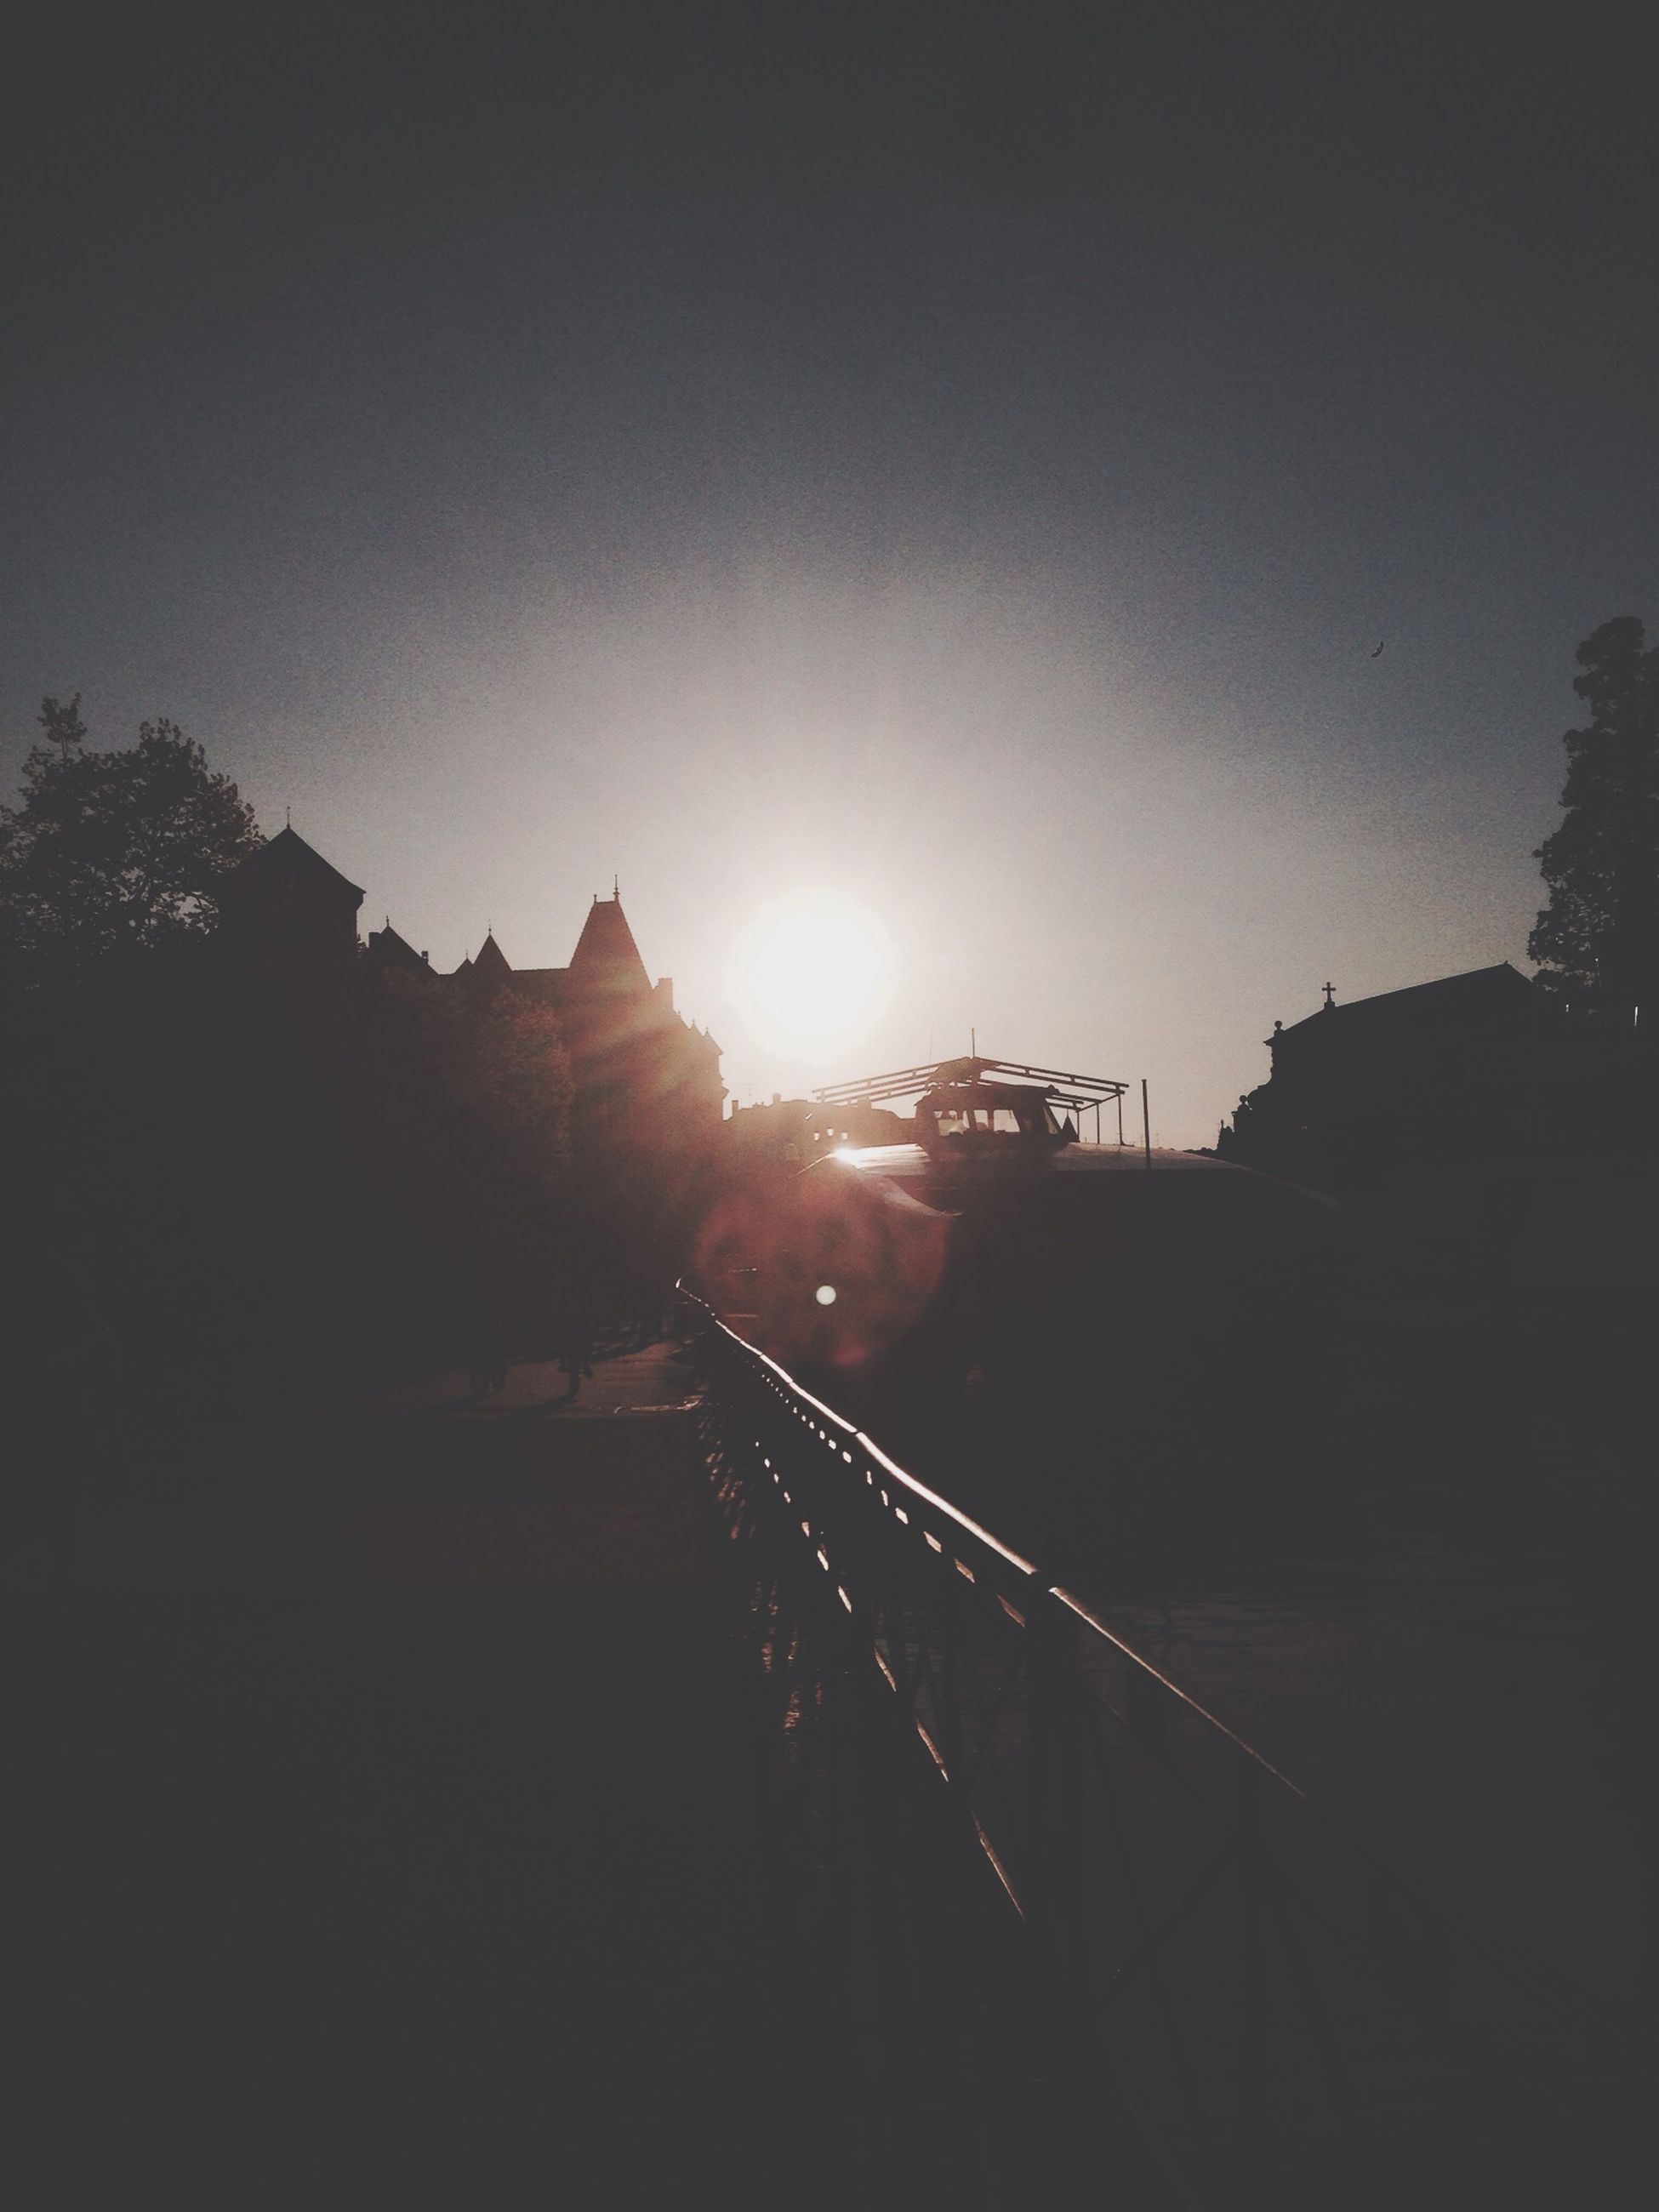 sun, clear sky, sunset, built structure, lens flare, silhouette, sunlight, copy space, architecture, sky, transportation, sunbeam, building exterior, tree, railroad track, outdoors, no people, nature, the way forward, dark